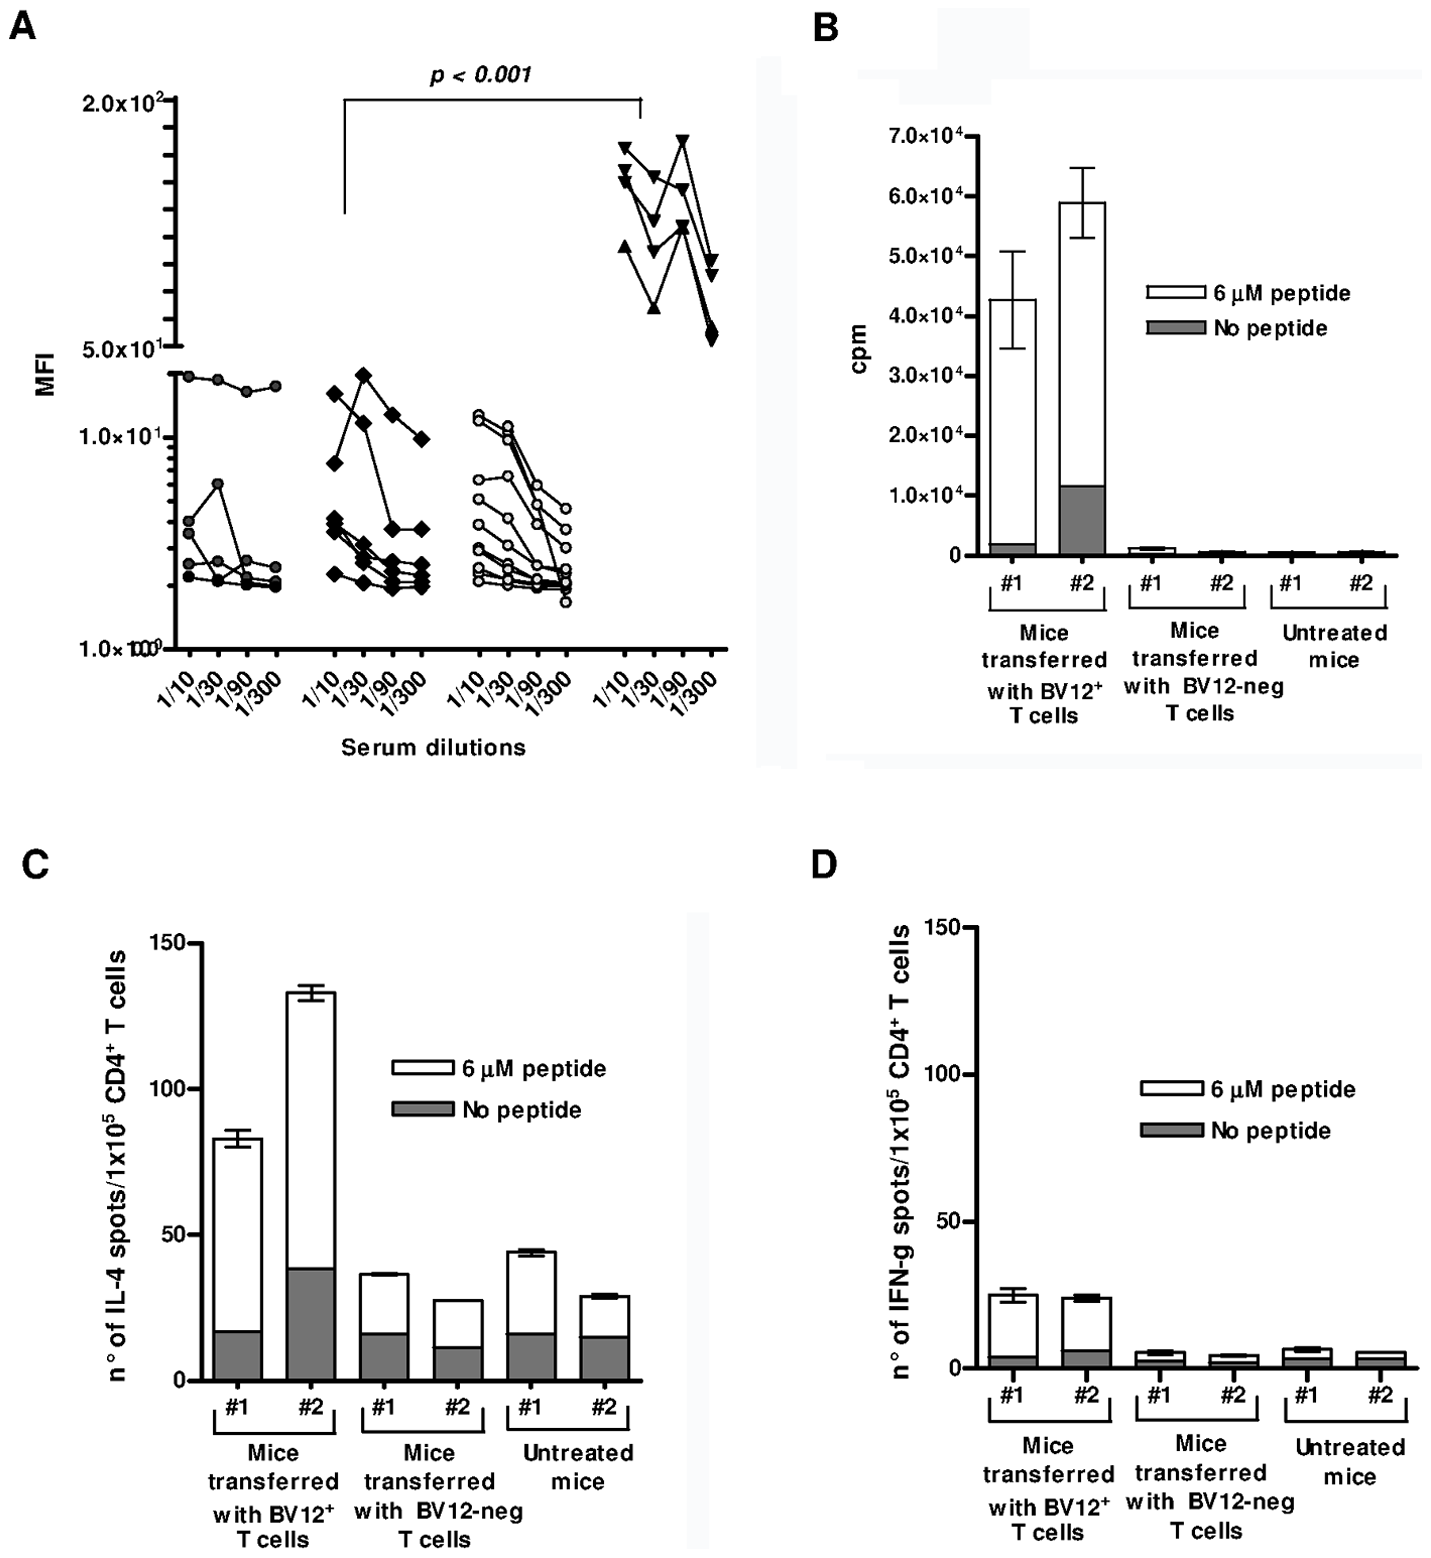 Humoral and cell-mediated responses of adoptively transferred T cells.